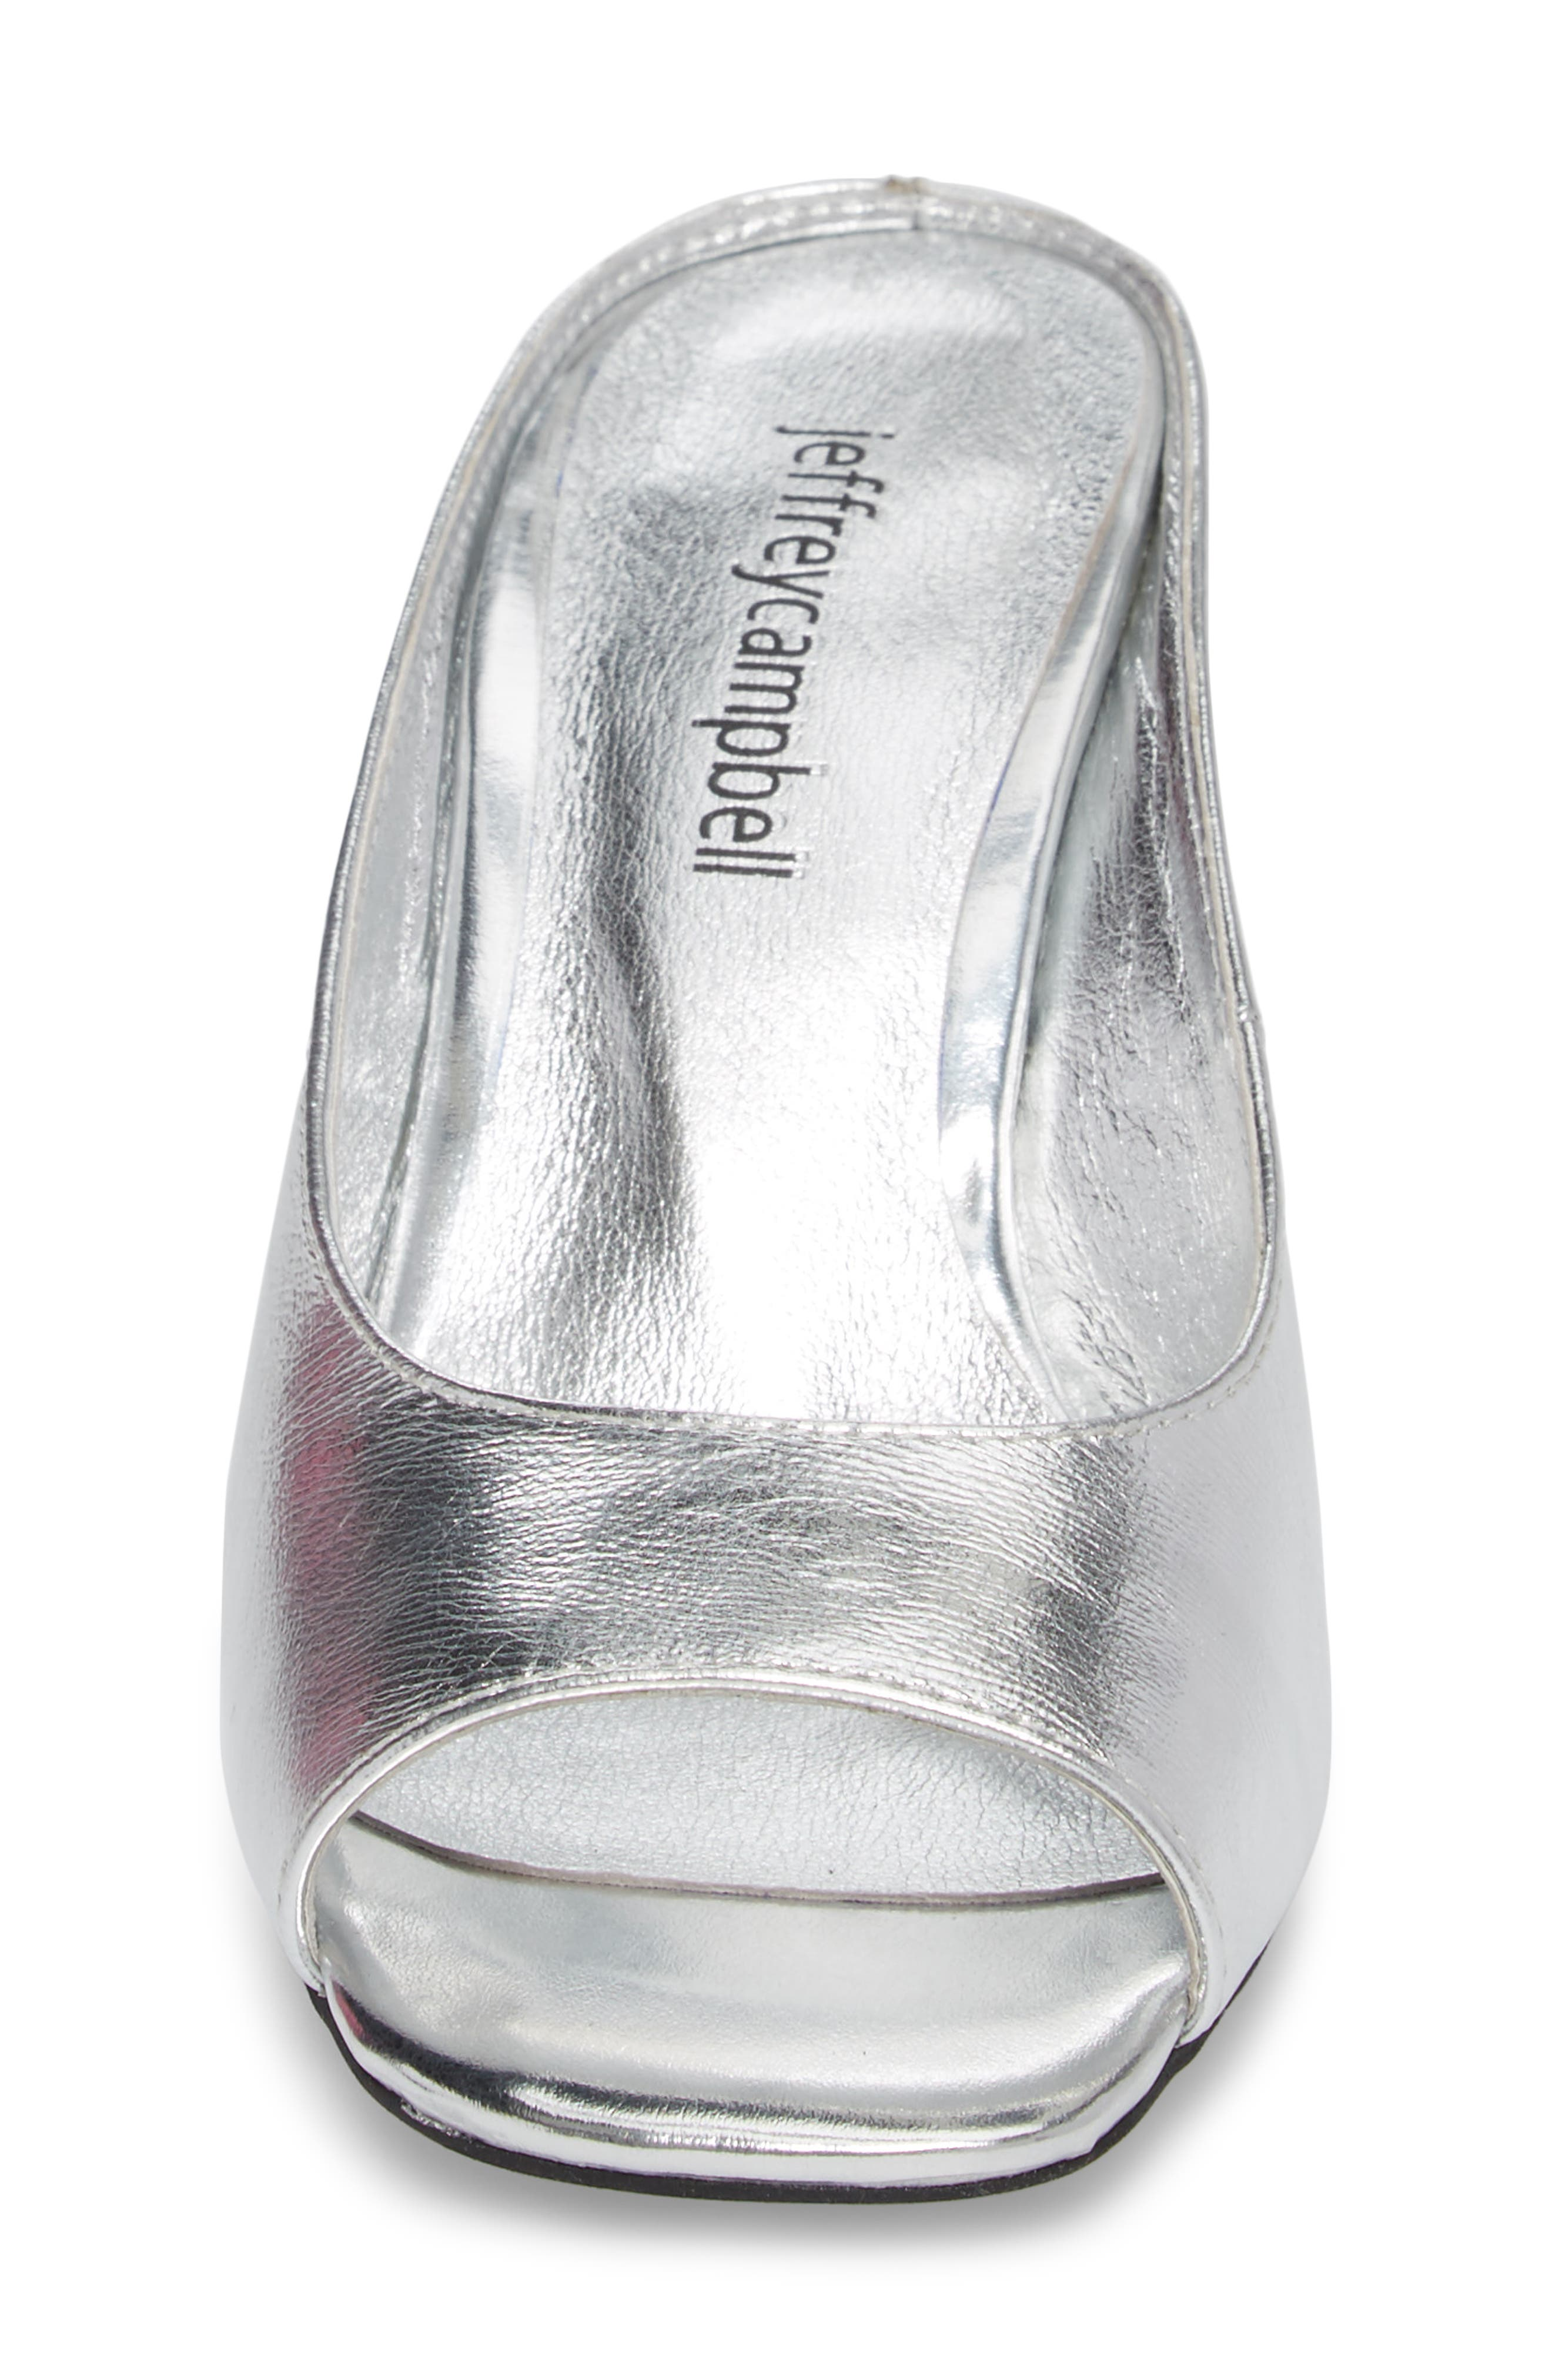 Generous Wedge Sandal,                             Alternate thumbnail 4, color,                             Silver Leather